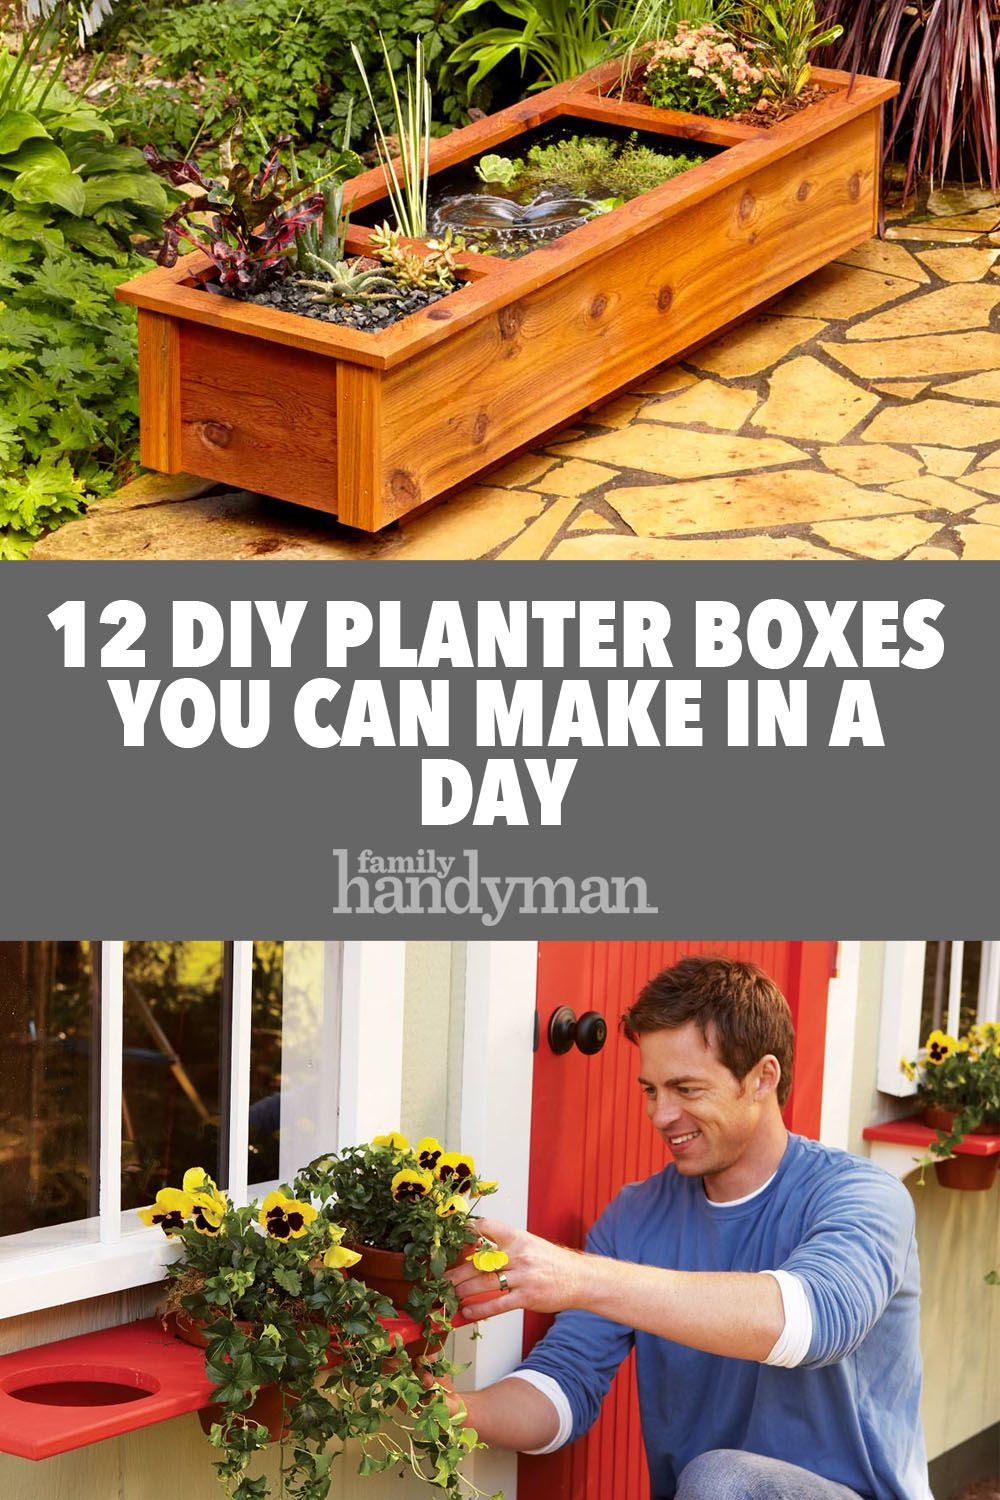 12 DIY Planter Boxes You Can Make in a Day Planter boxes